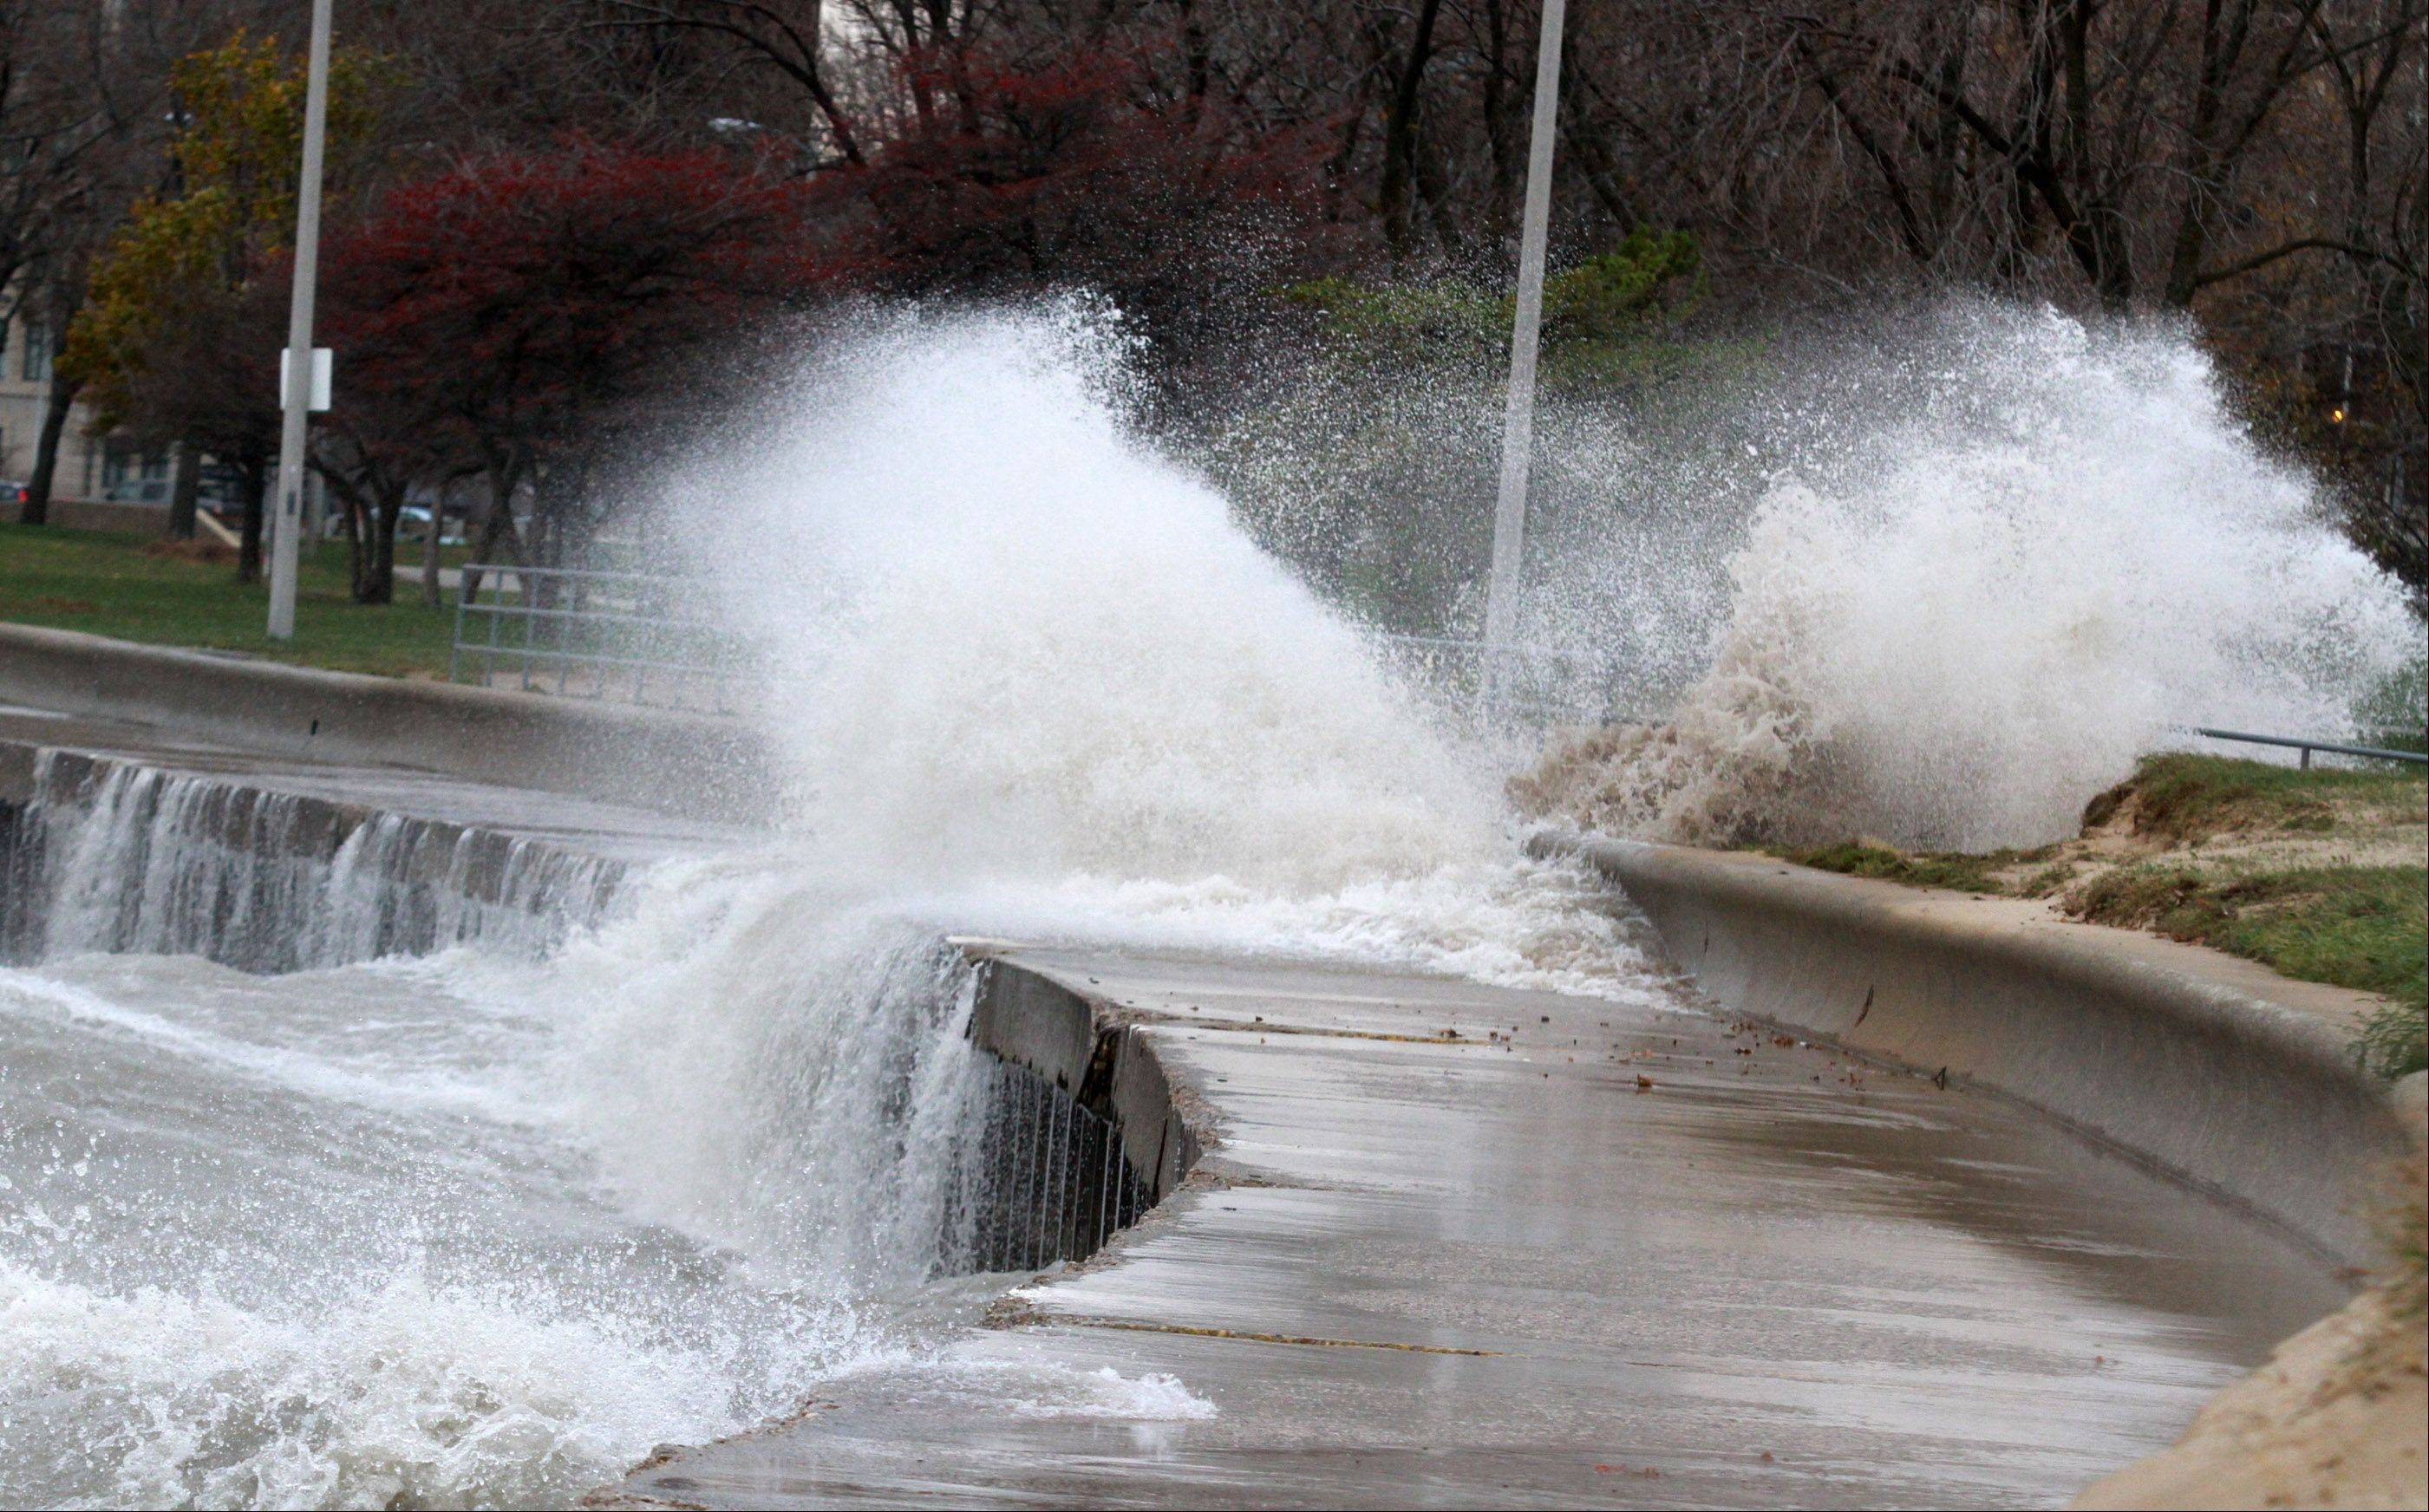 Waves measuring as high as 20 feet crashed Chicago's lakefront Tuesday morning, including the jogging path at Montrose Beach. The spectacular waves and high winds were remnants of the superstorm that's devastated parts of the East Coast.